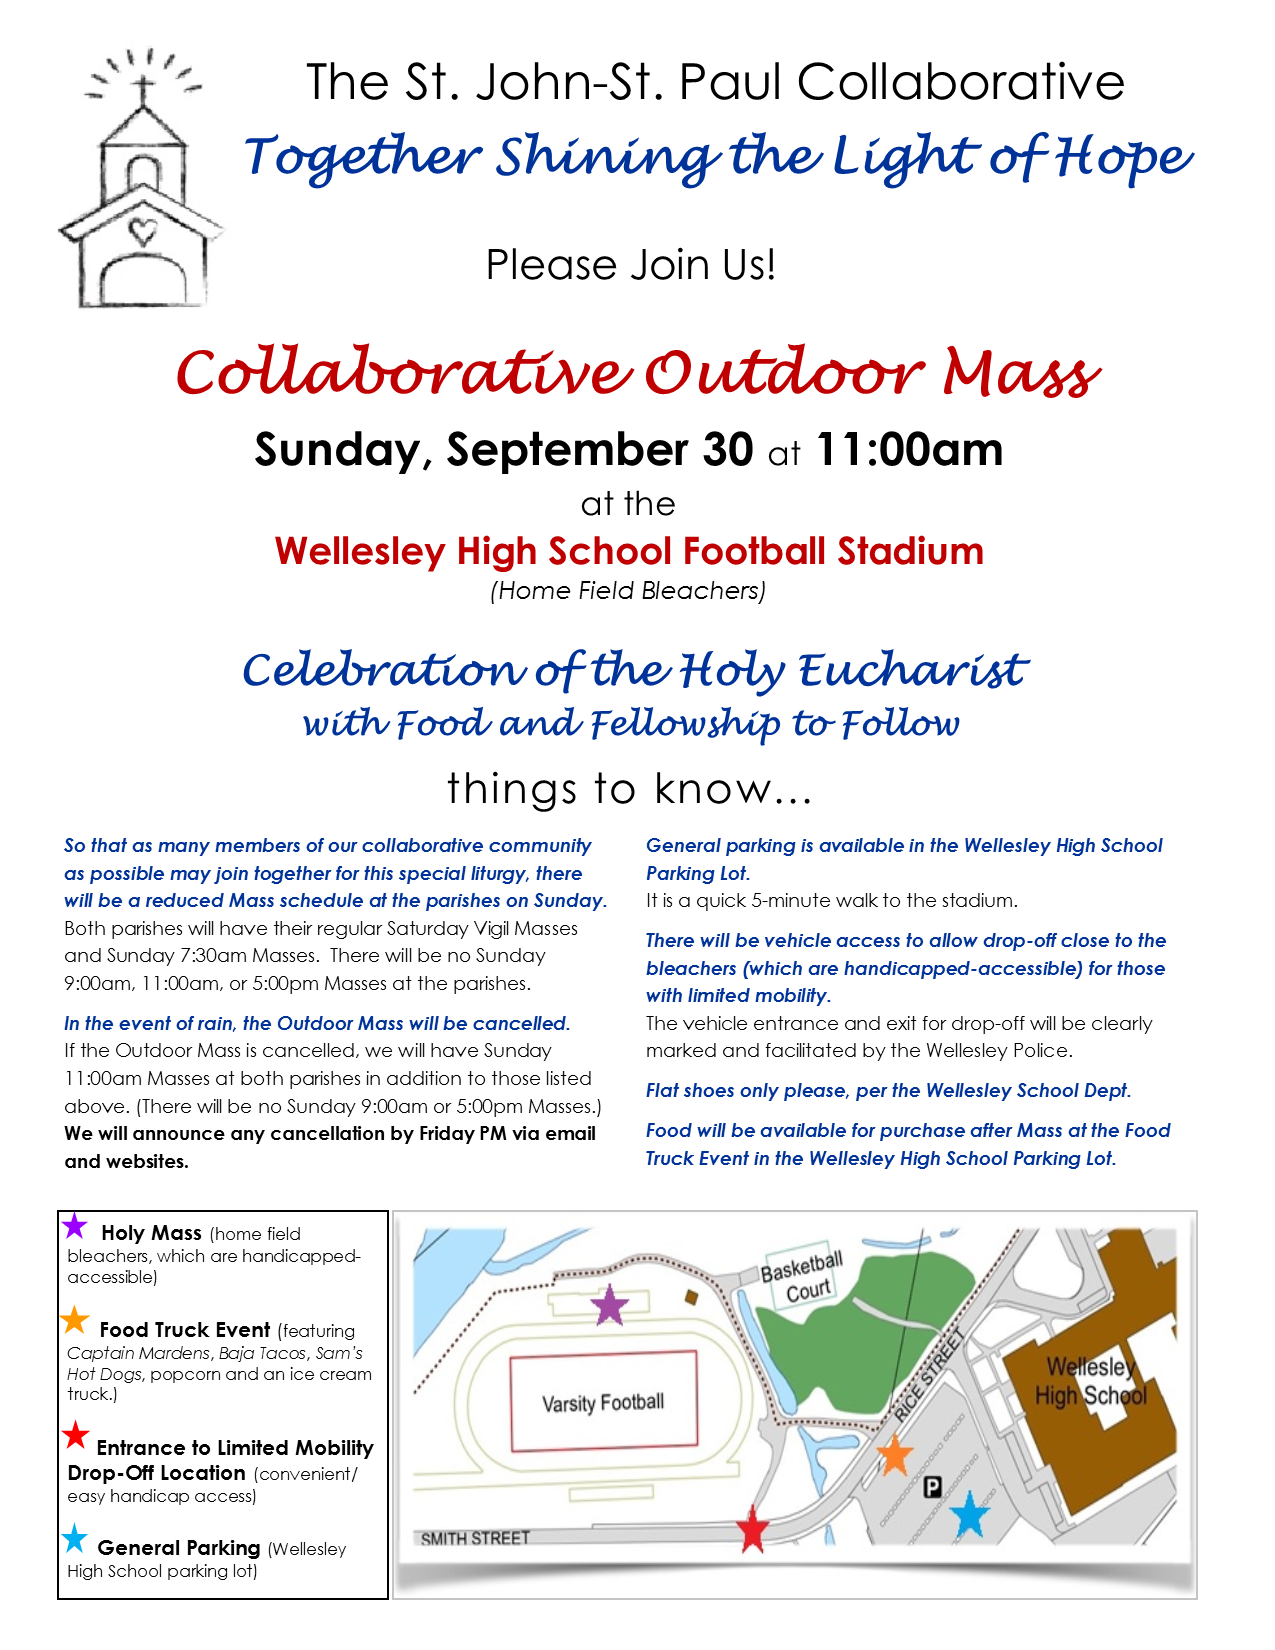 Our Collaborative Outdoor Mass: Sunday, September 30 at 11:00am